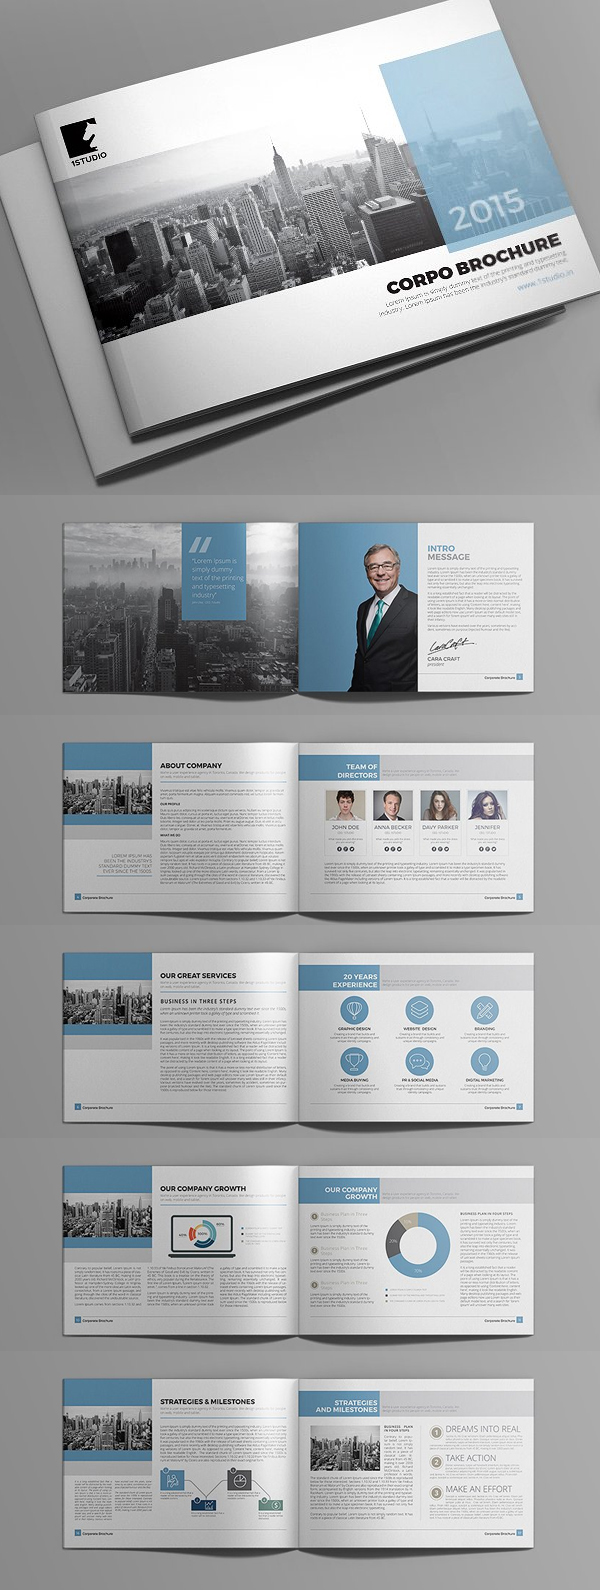 100 Professional Corporate Brochure Templates - 18